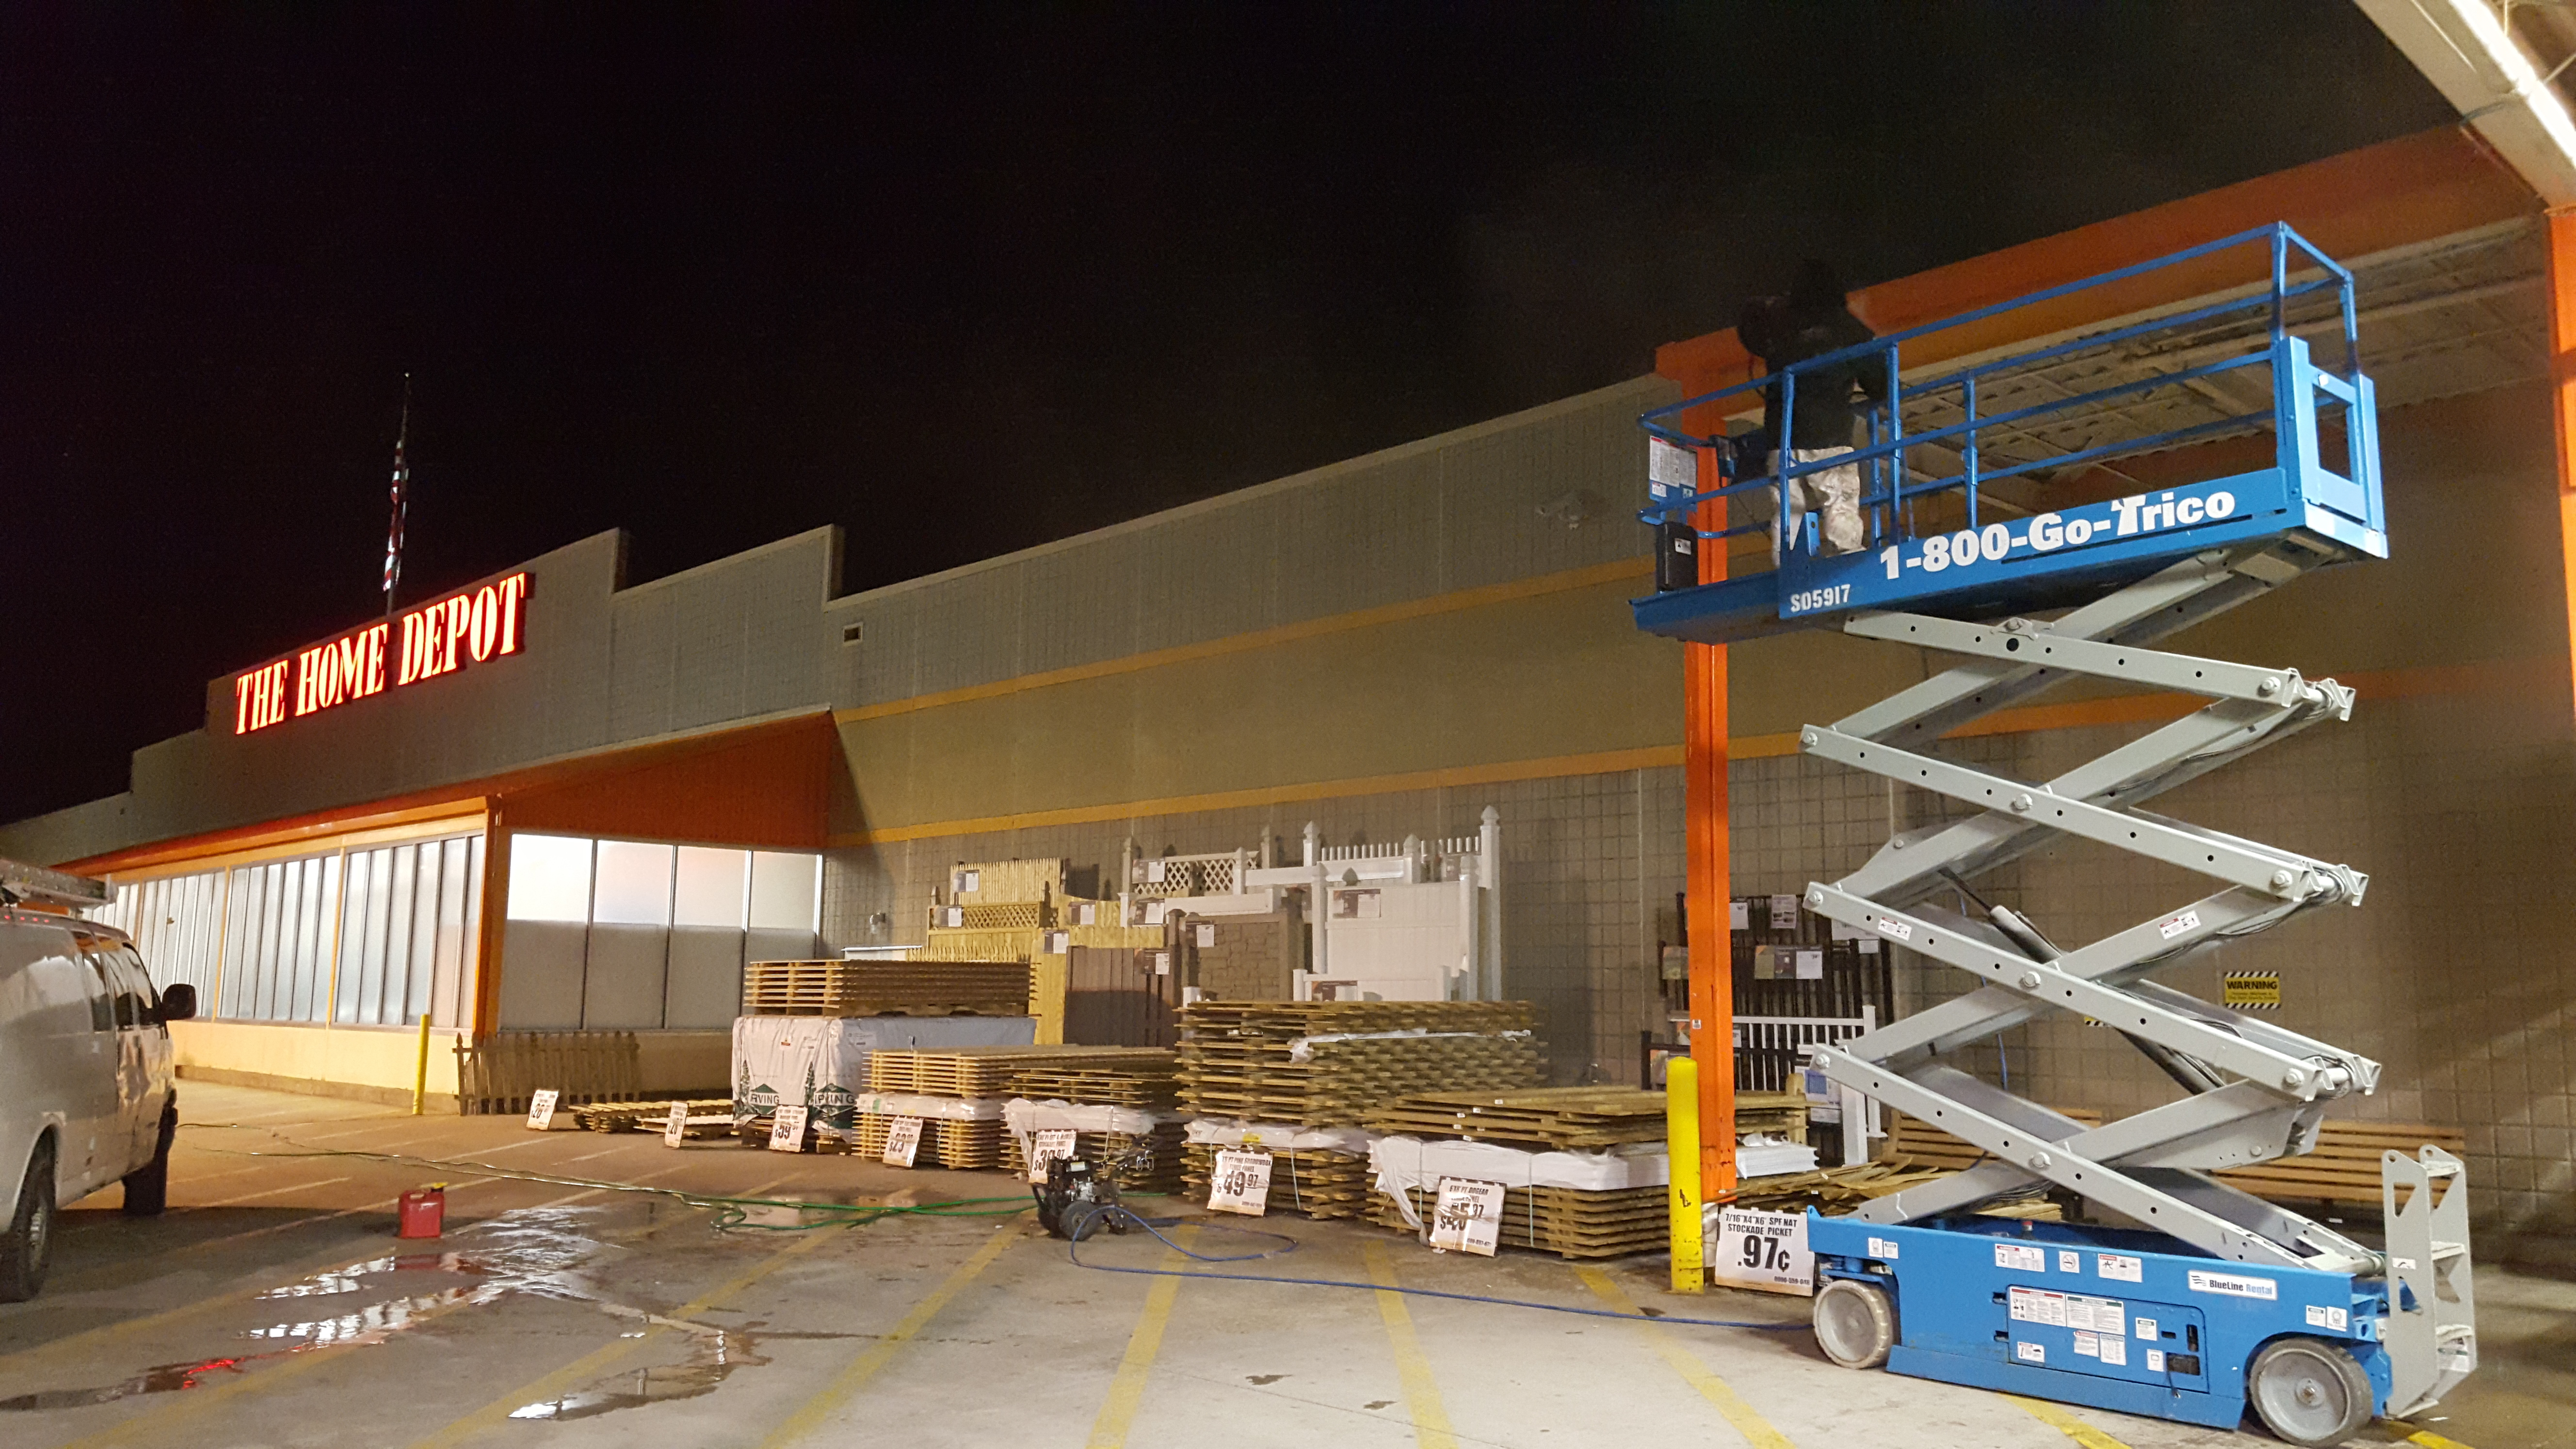 Home depot mantua nj retail store painting - Exterior water service line coverage ...